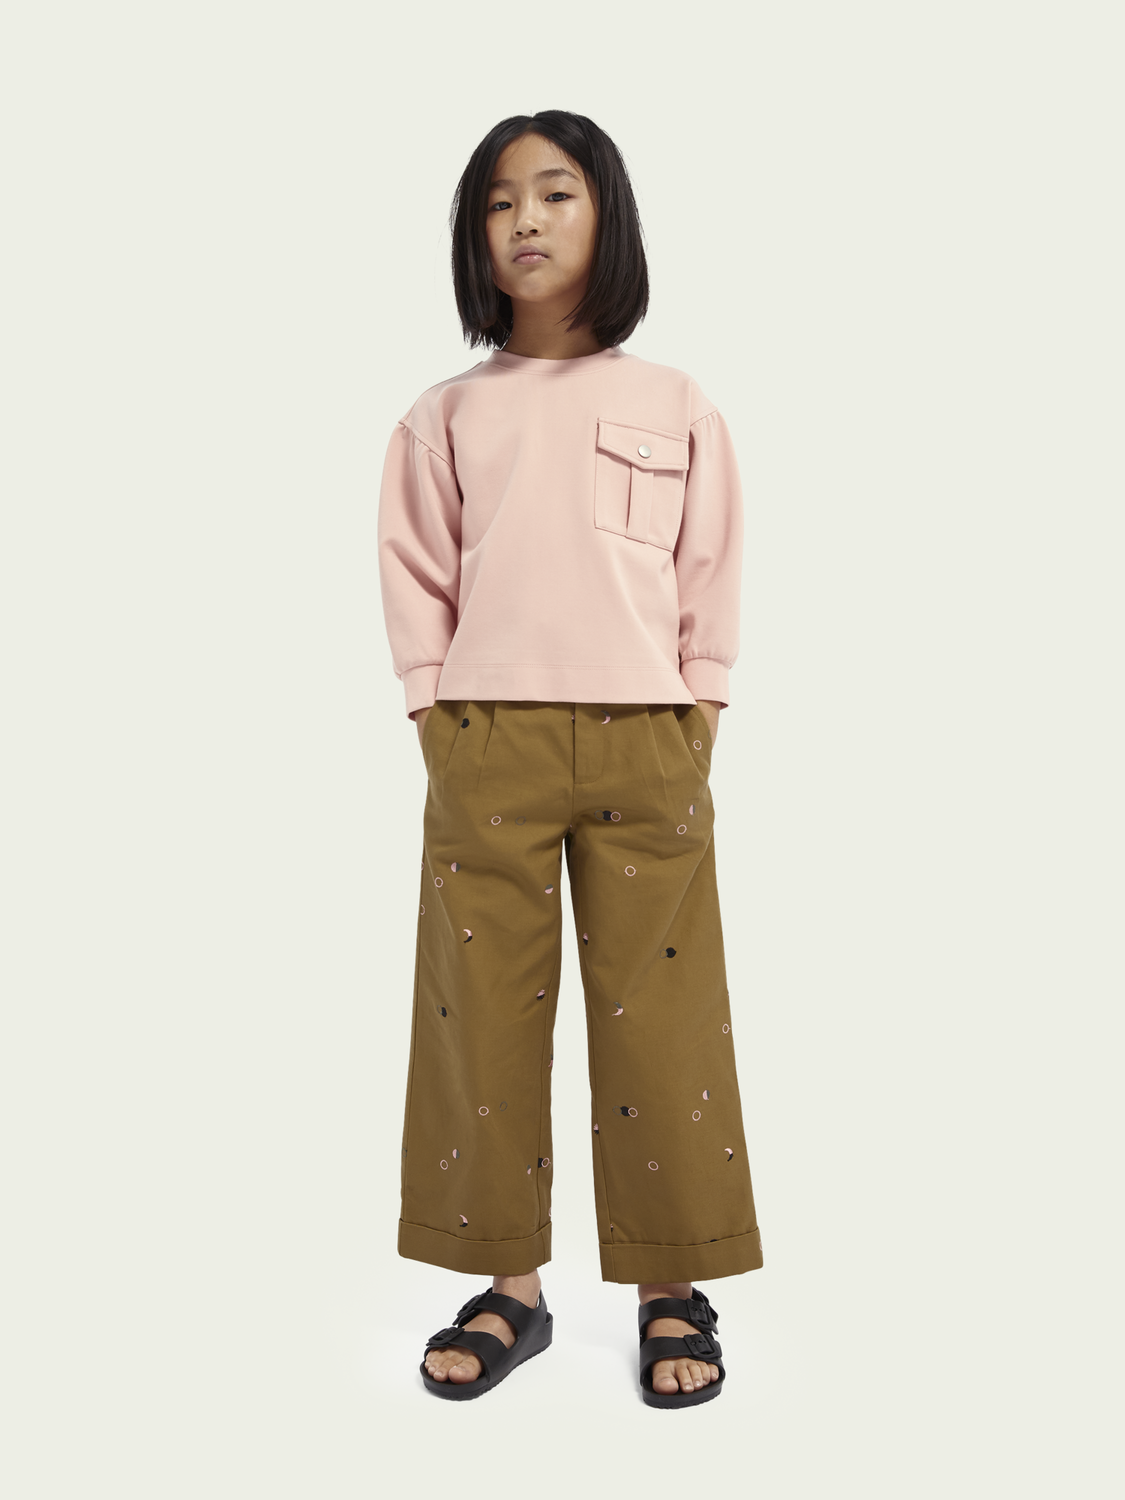 Kids Sweater with patched on pocket